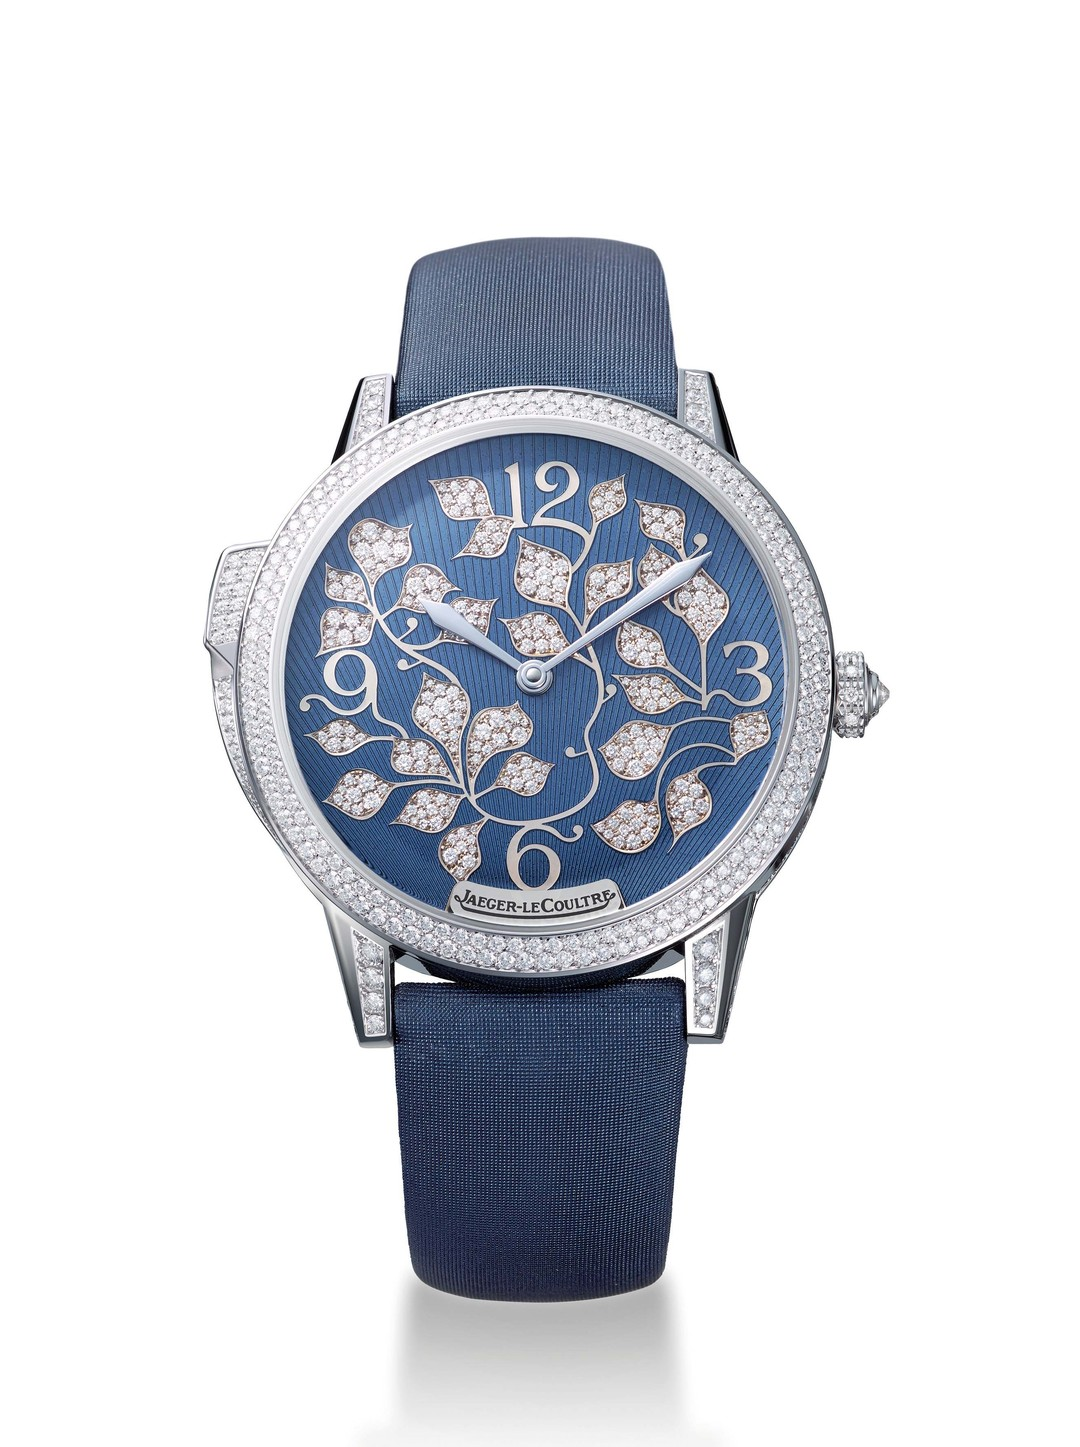 Daniel Riedo, CEO of Jaeger-LeCoultre, and his team, has unveiled the new Rendez-Vous Ivy Minute Repeater watch at Watches&Wonders in Hong Kong - the first minute repeater designed exclusively for women by the Swiss watchmaker.